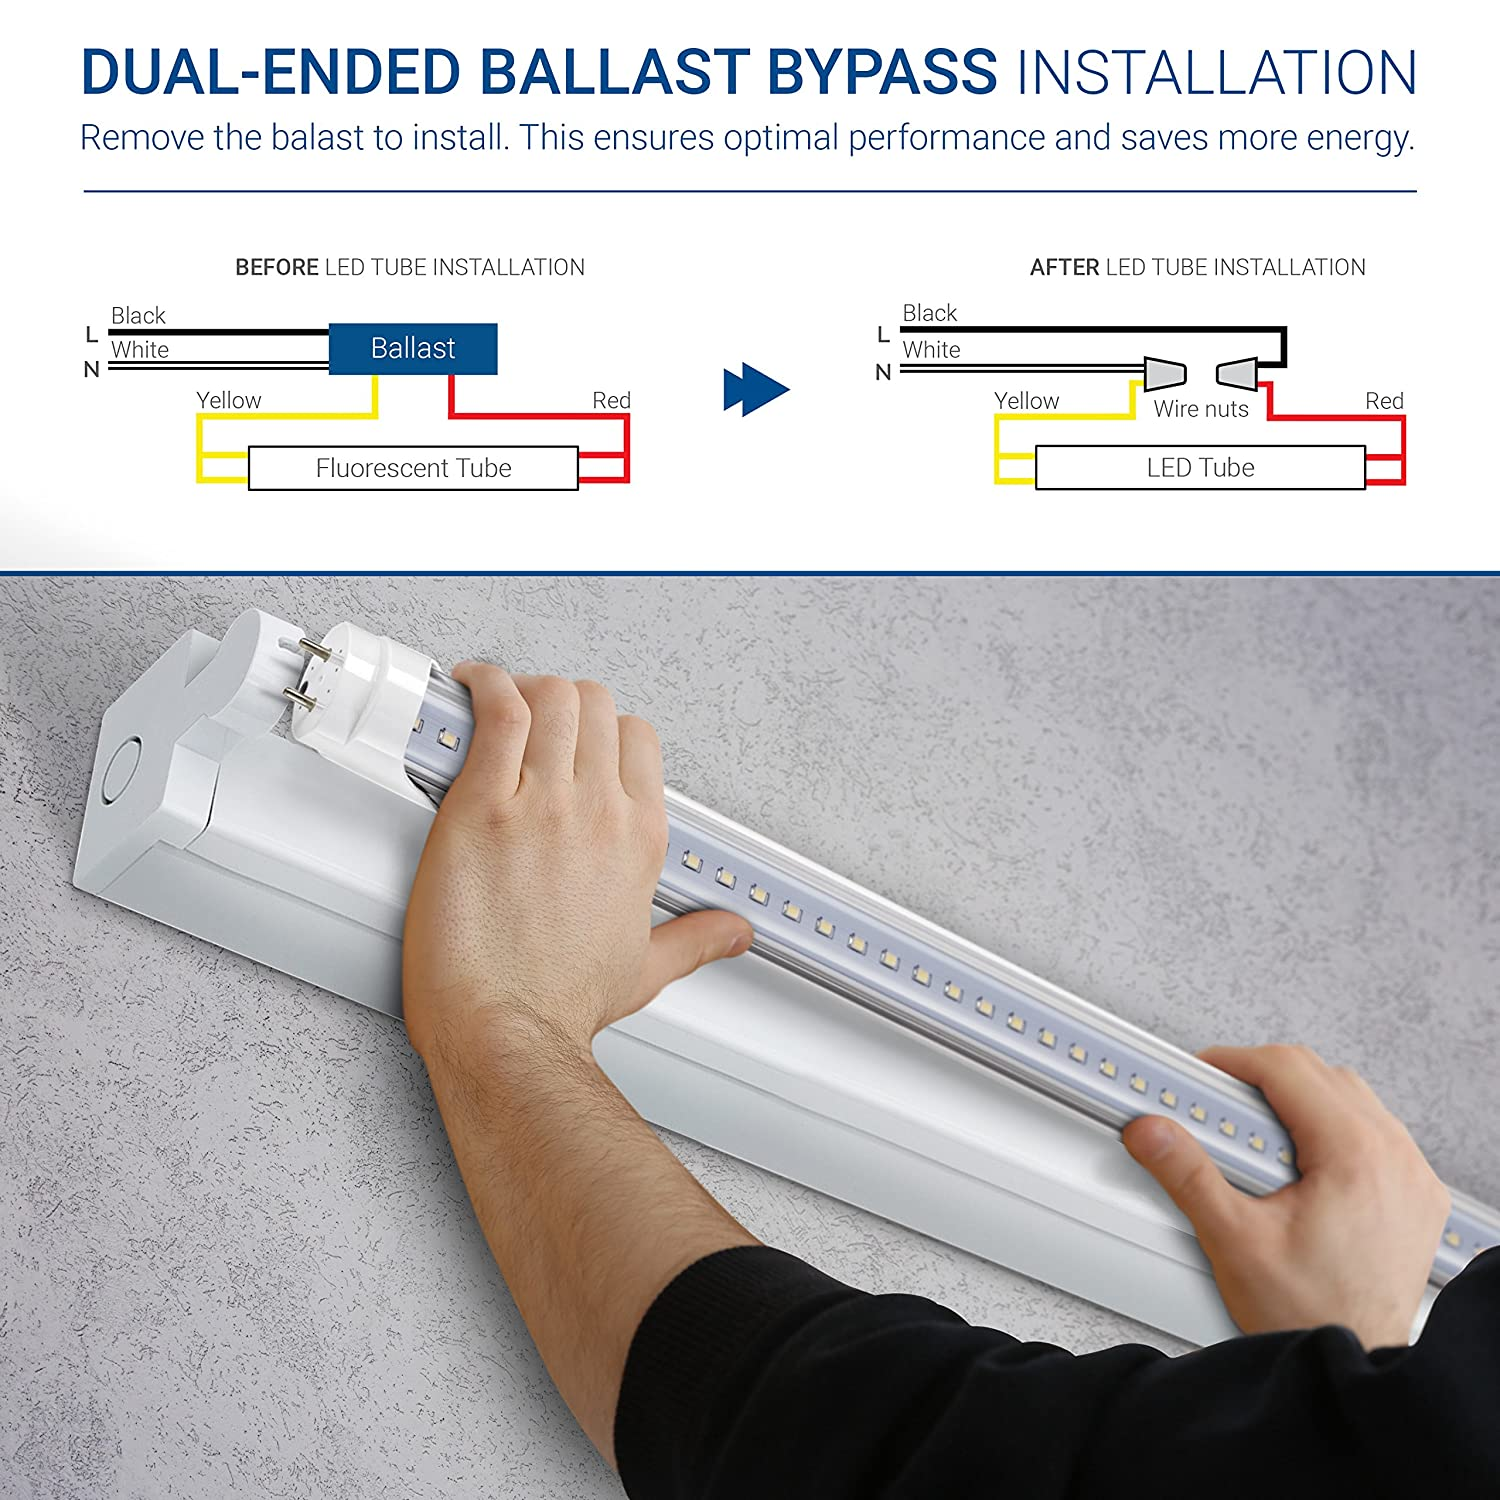 Hyperikon T8 T10 T12 Led Light Tube 4ft Dual End Powered Easy Ballast Wiring Diagram High Get Free Image About Removal Installation 18w 48w Equivalent 2320 Lumens 4000k Daylight Glow